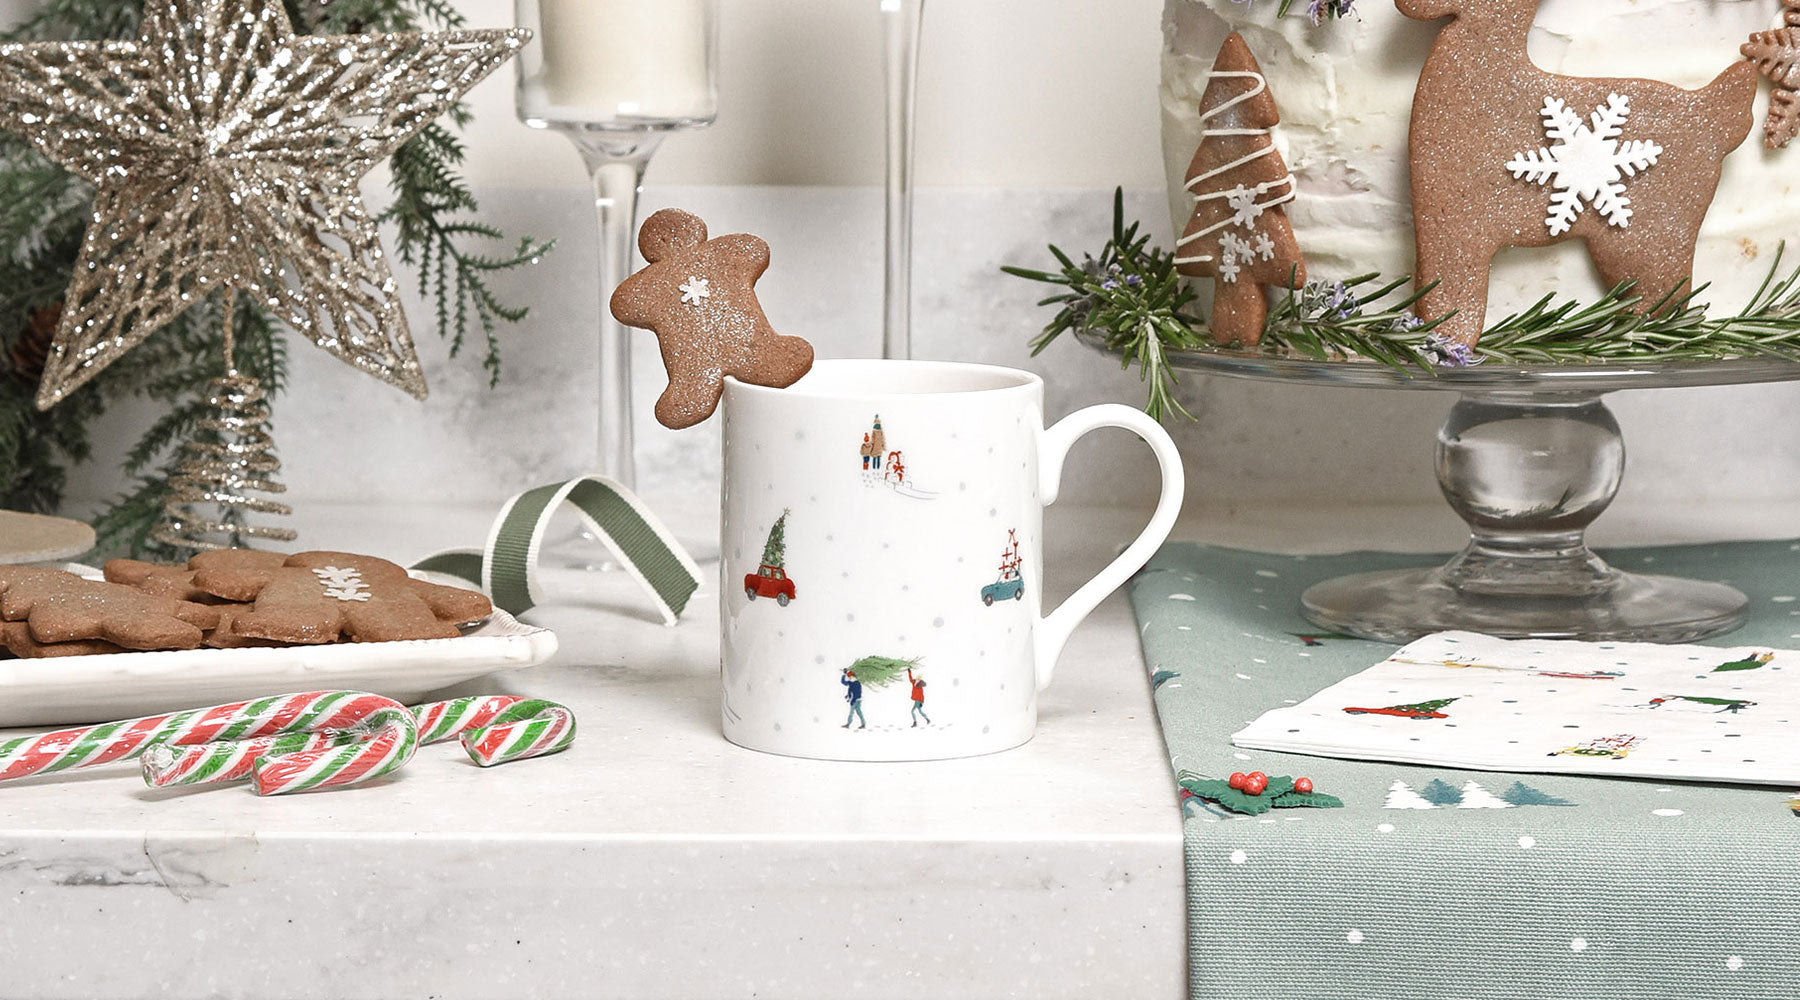 Christmas Mugs by Sophie Allport